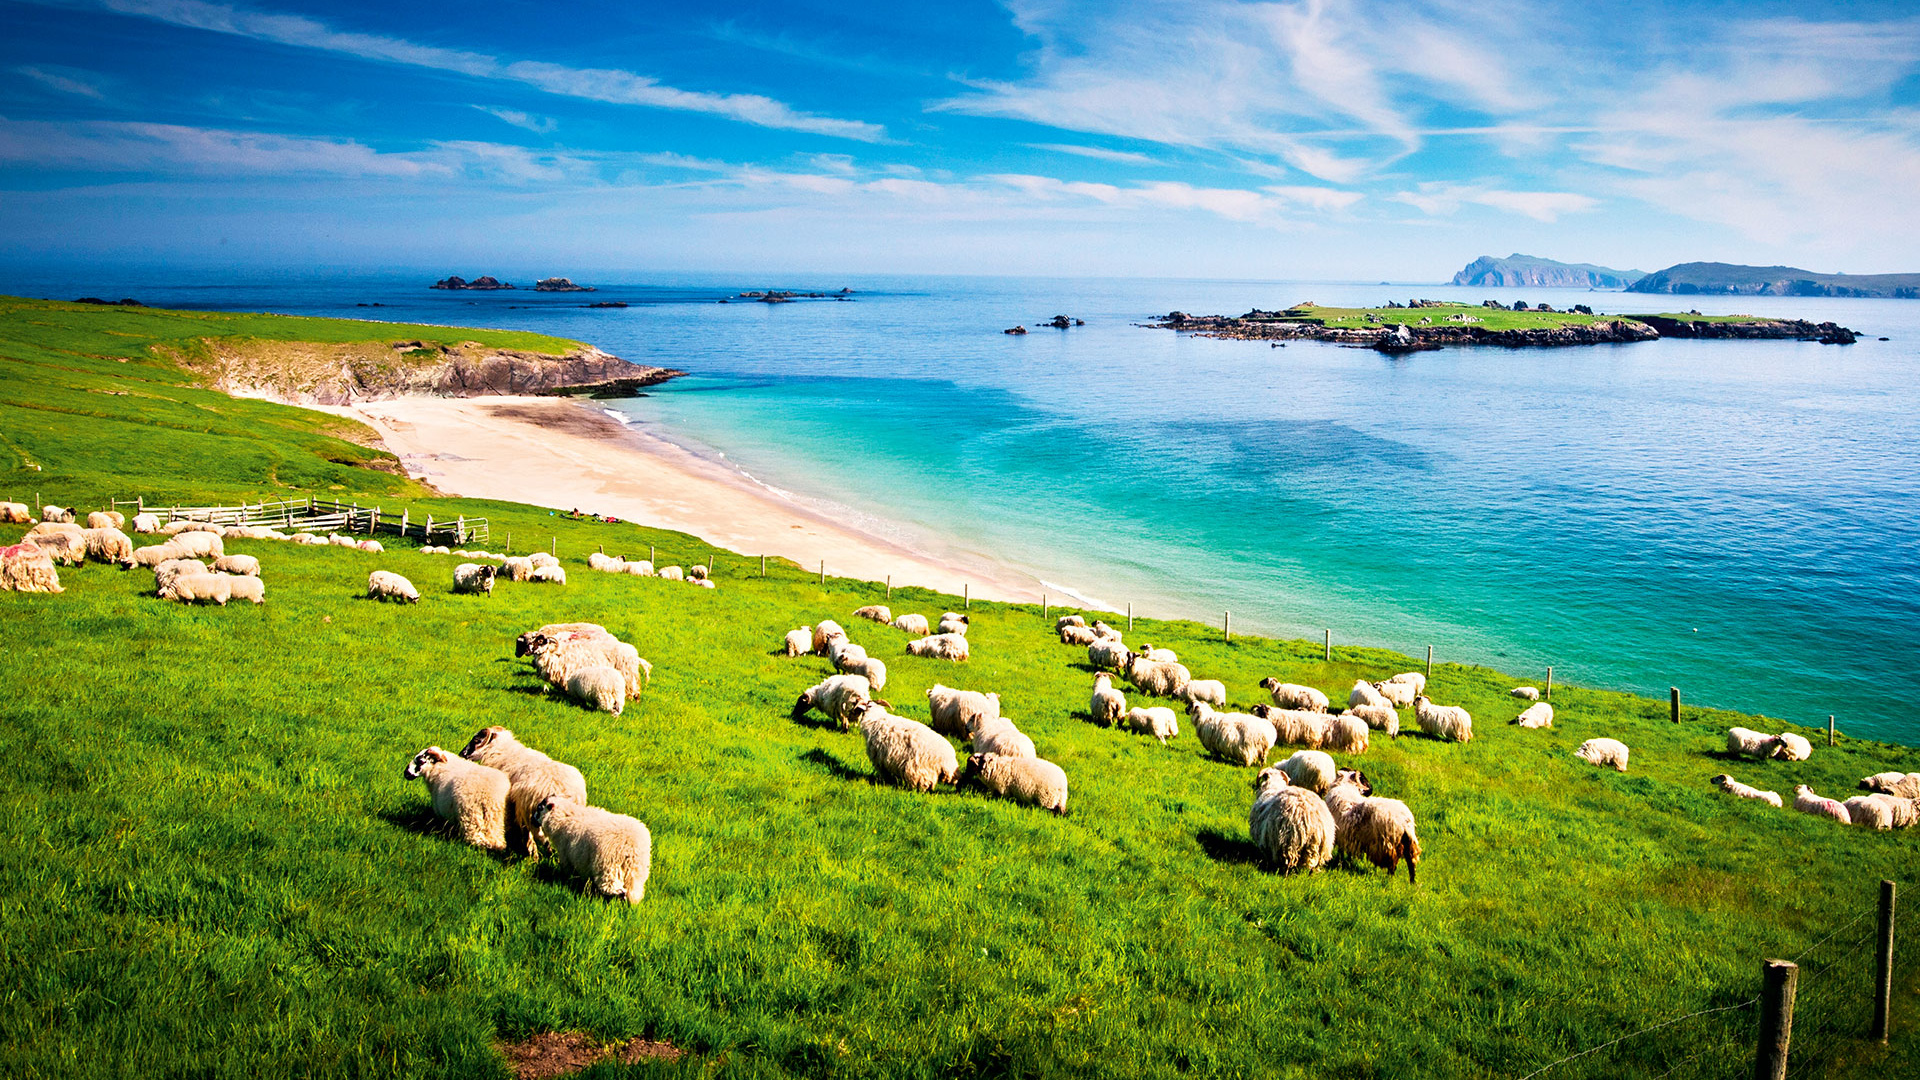 Sheep on a hillside in County Kerry